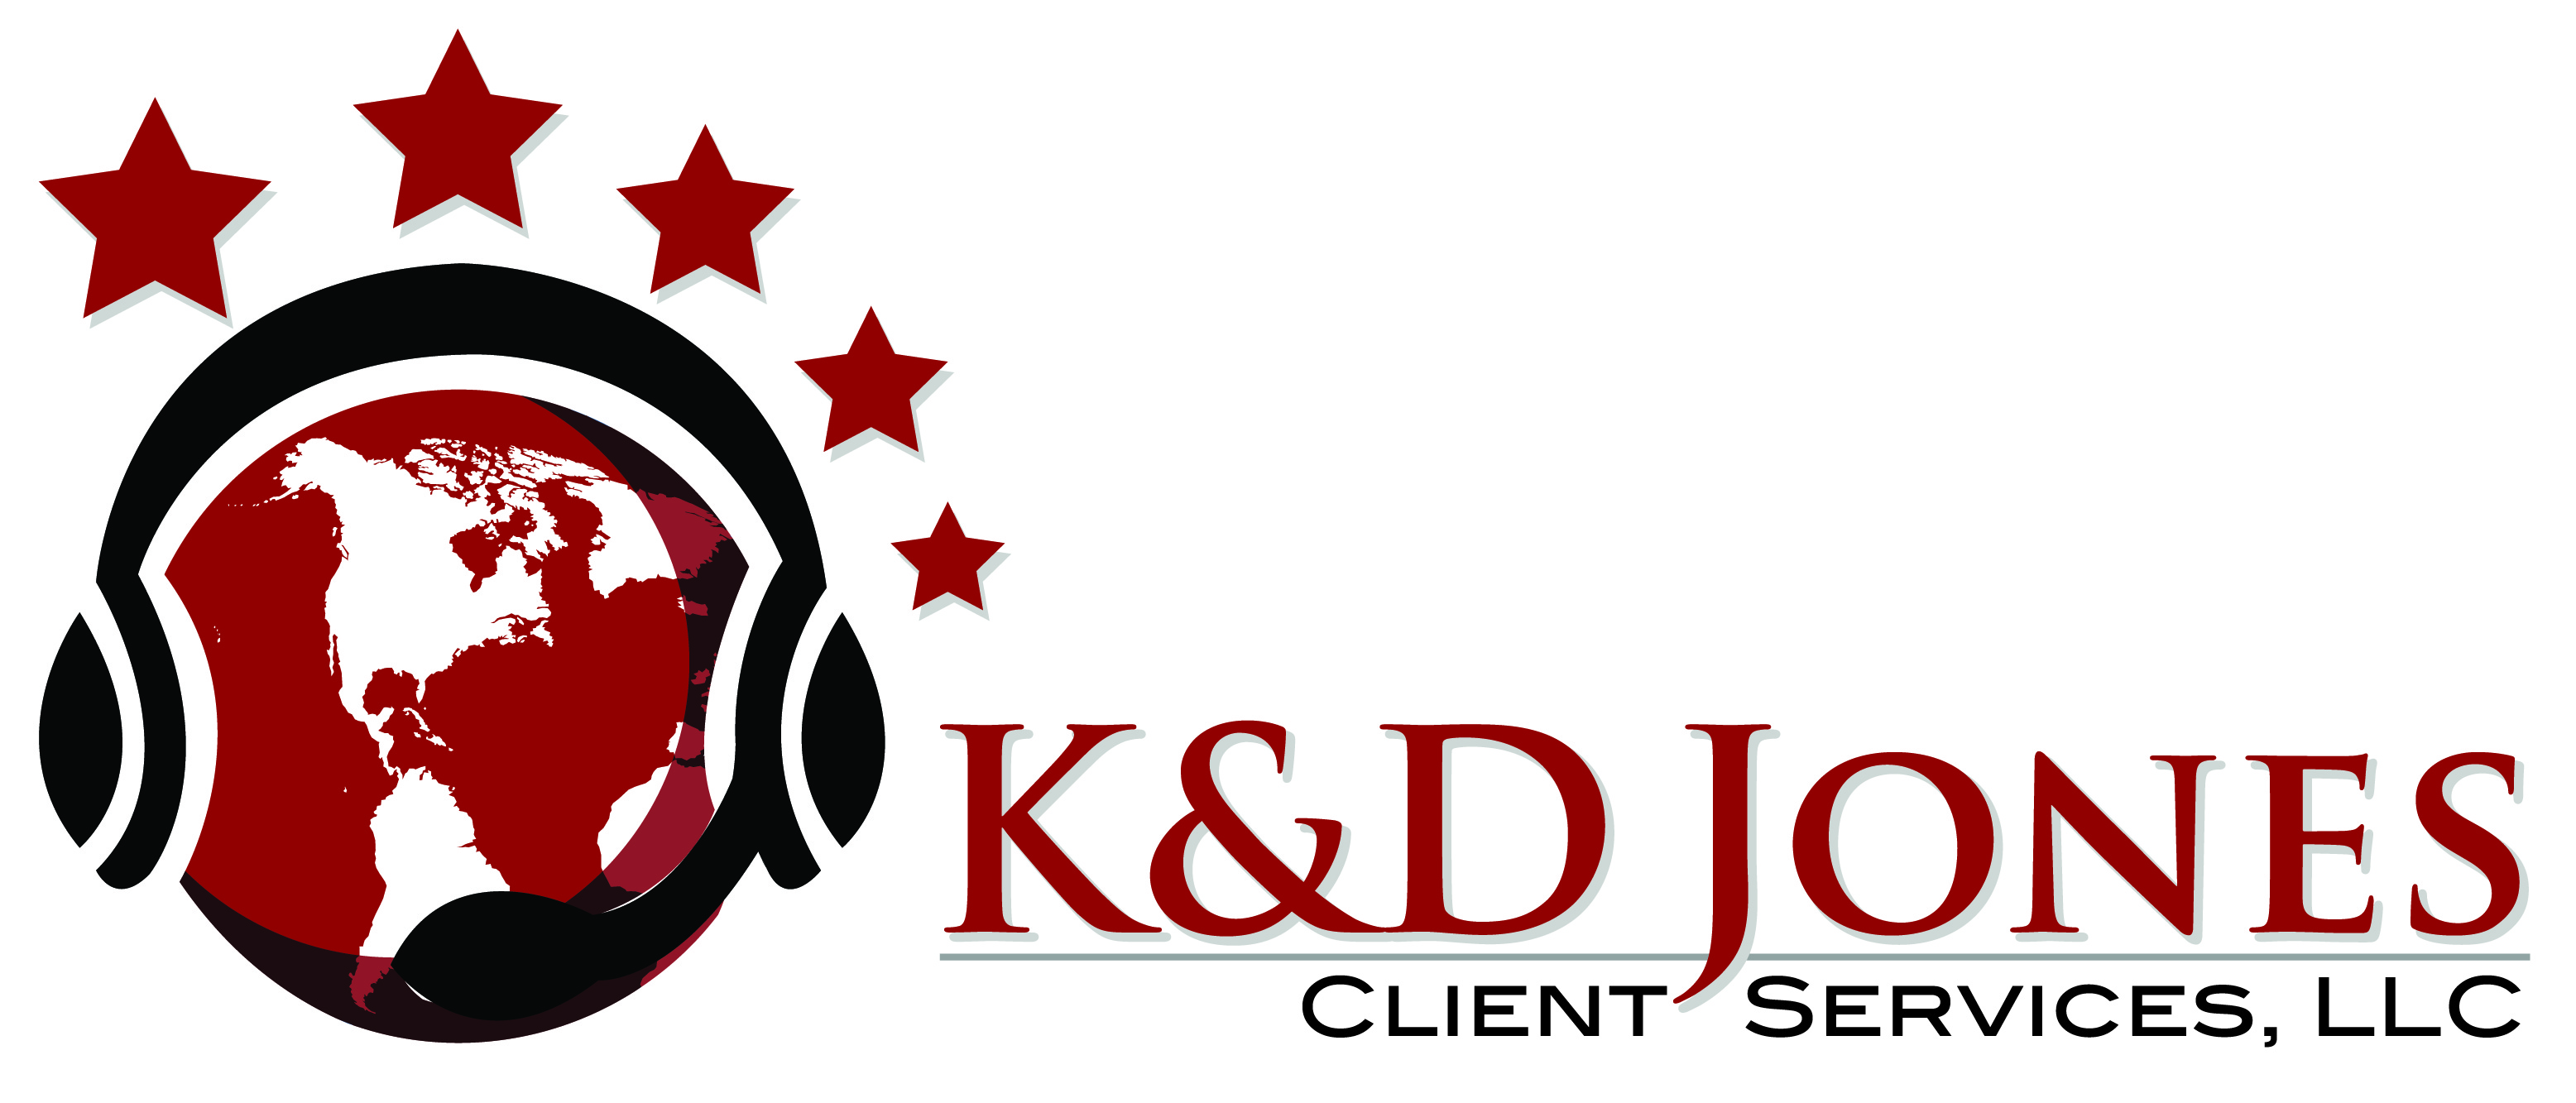 K & D Jones Client Services llc